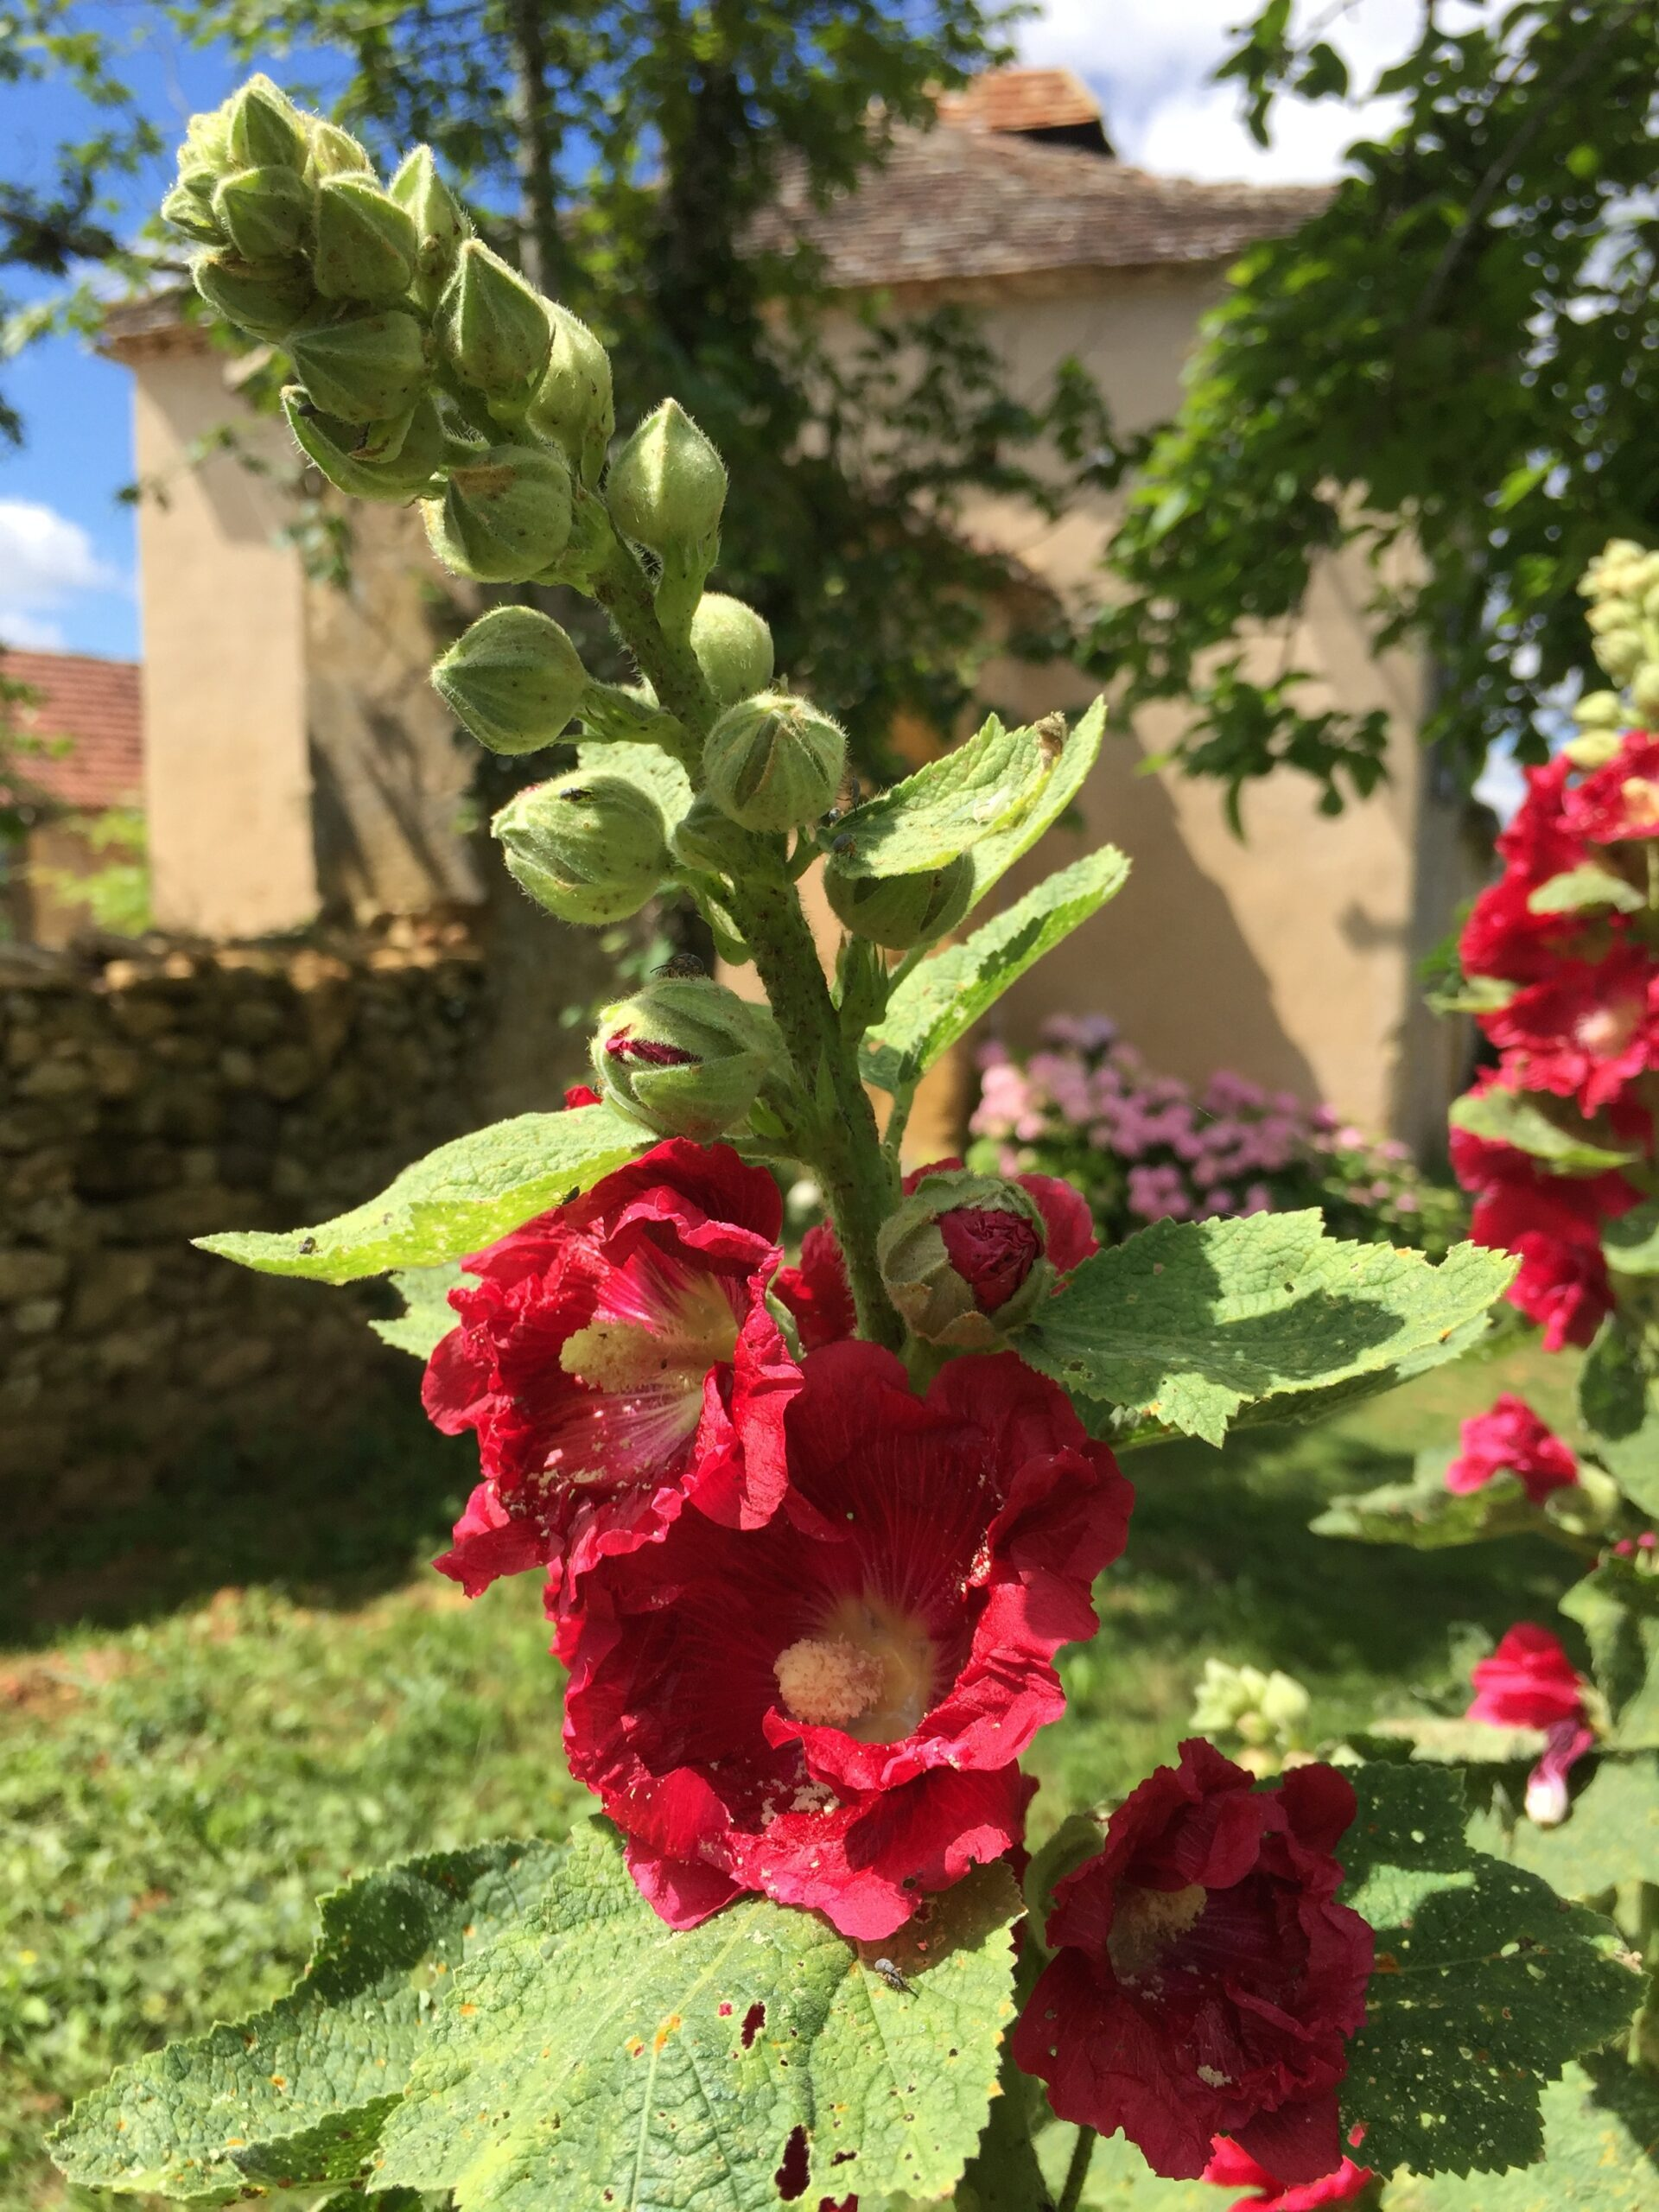 Wild hollyhocks growing in the garden of Le Mas & Le Mazet, holiday homes in the Dordogne